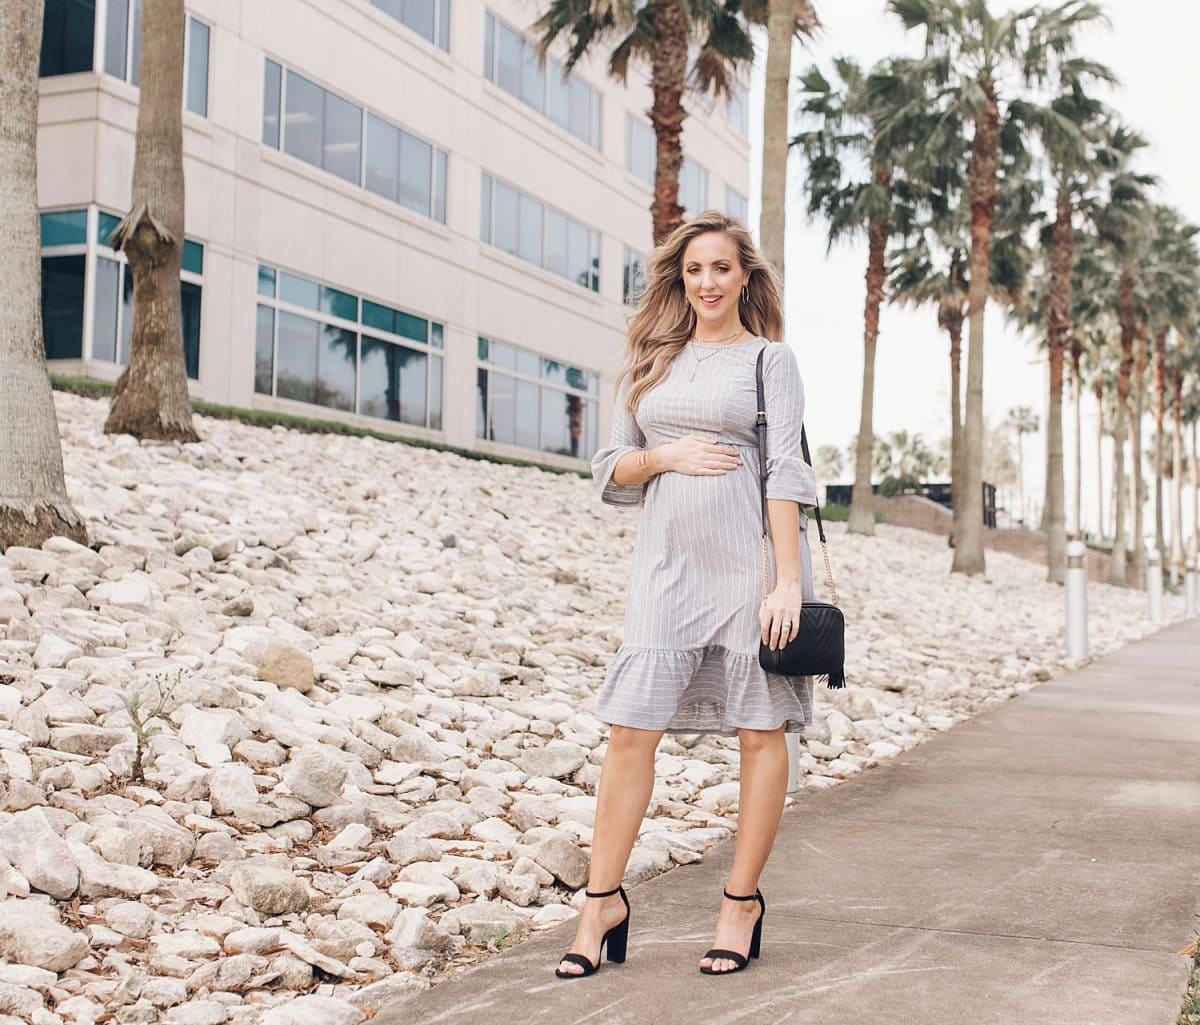 Houston lifestyle blogger Meg O. on the Go shares her favorite spring maternity dresses - this grey striped ruffle trim dresss with 3/4 sleeves is perfect for spring!